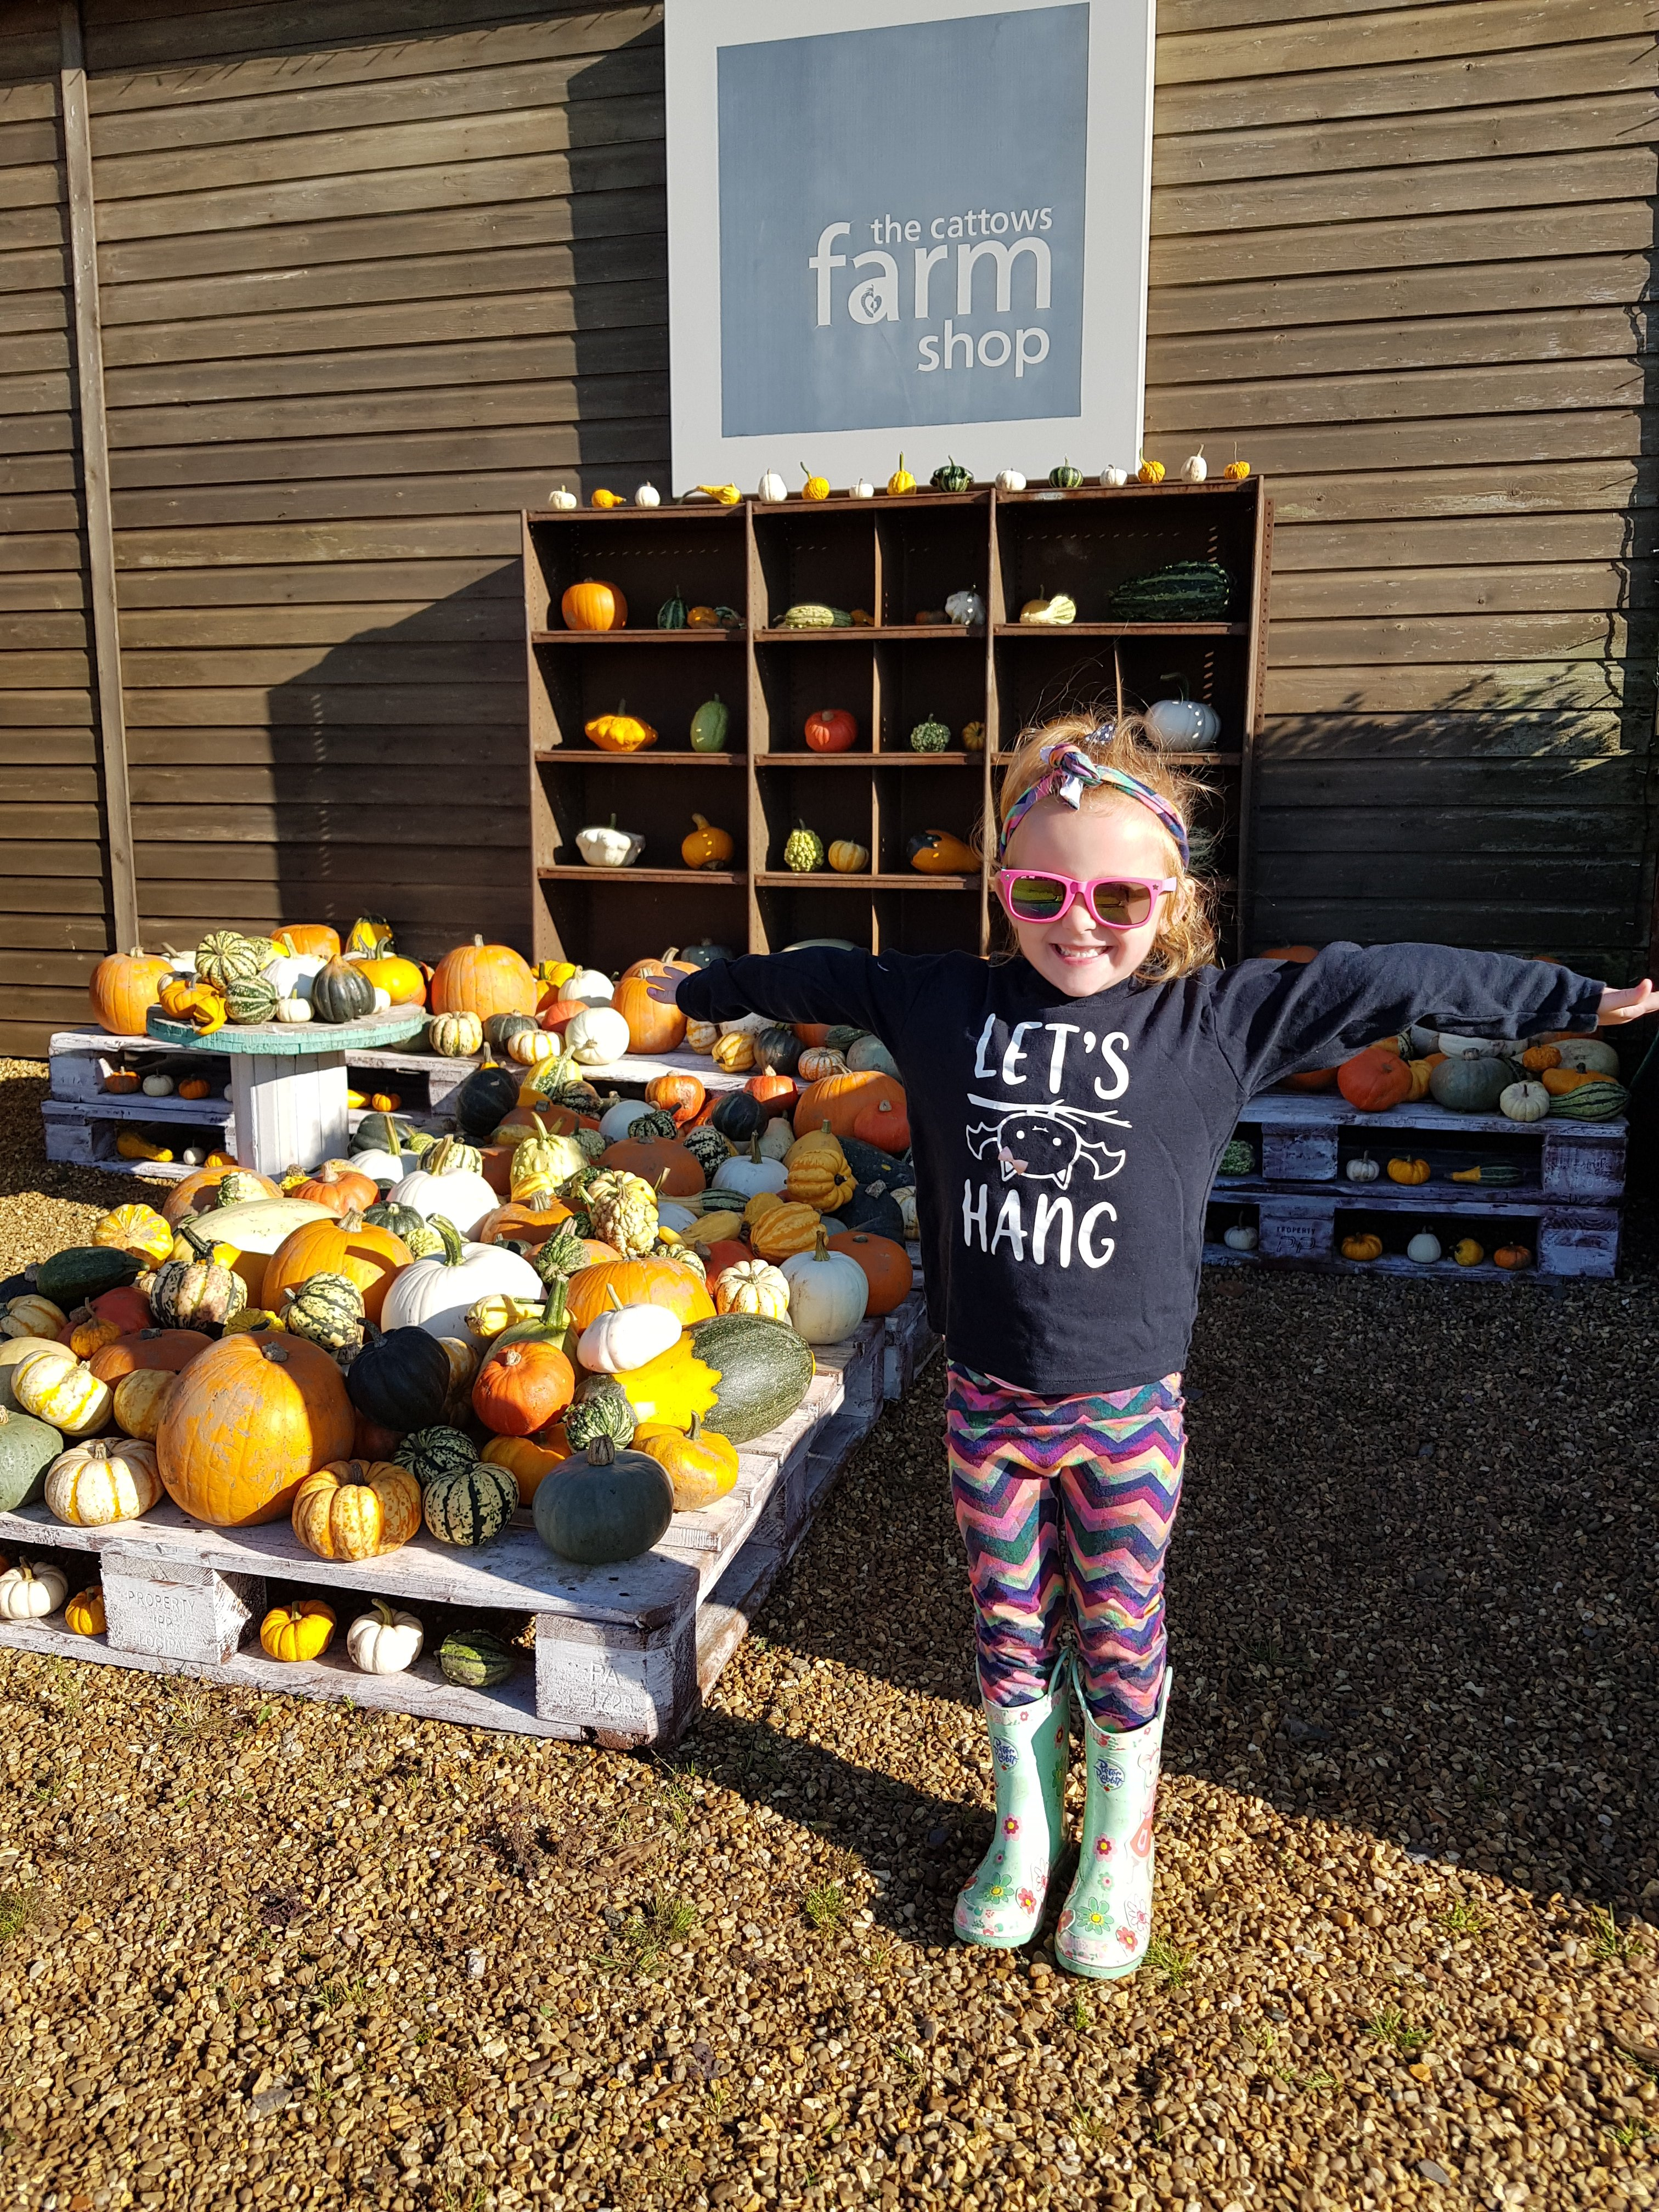 Cattows Farm has an amazing variety of pumpkins